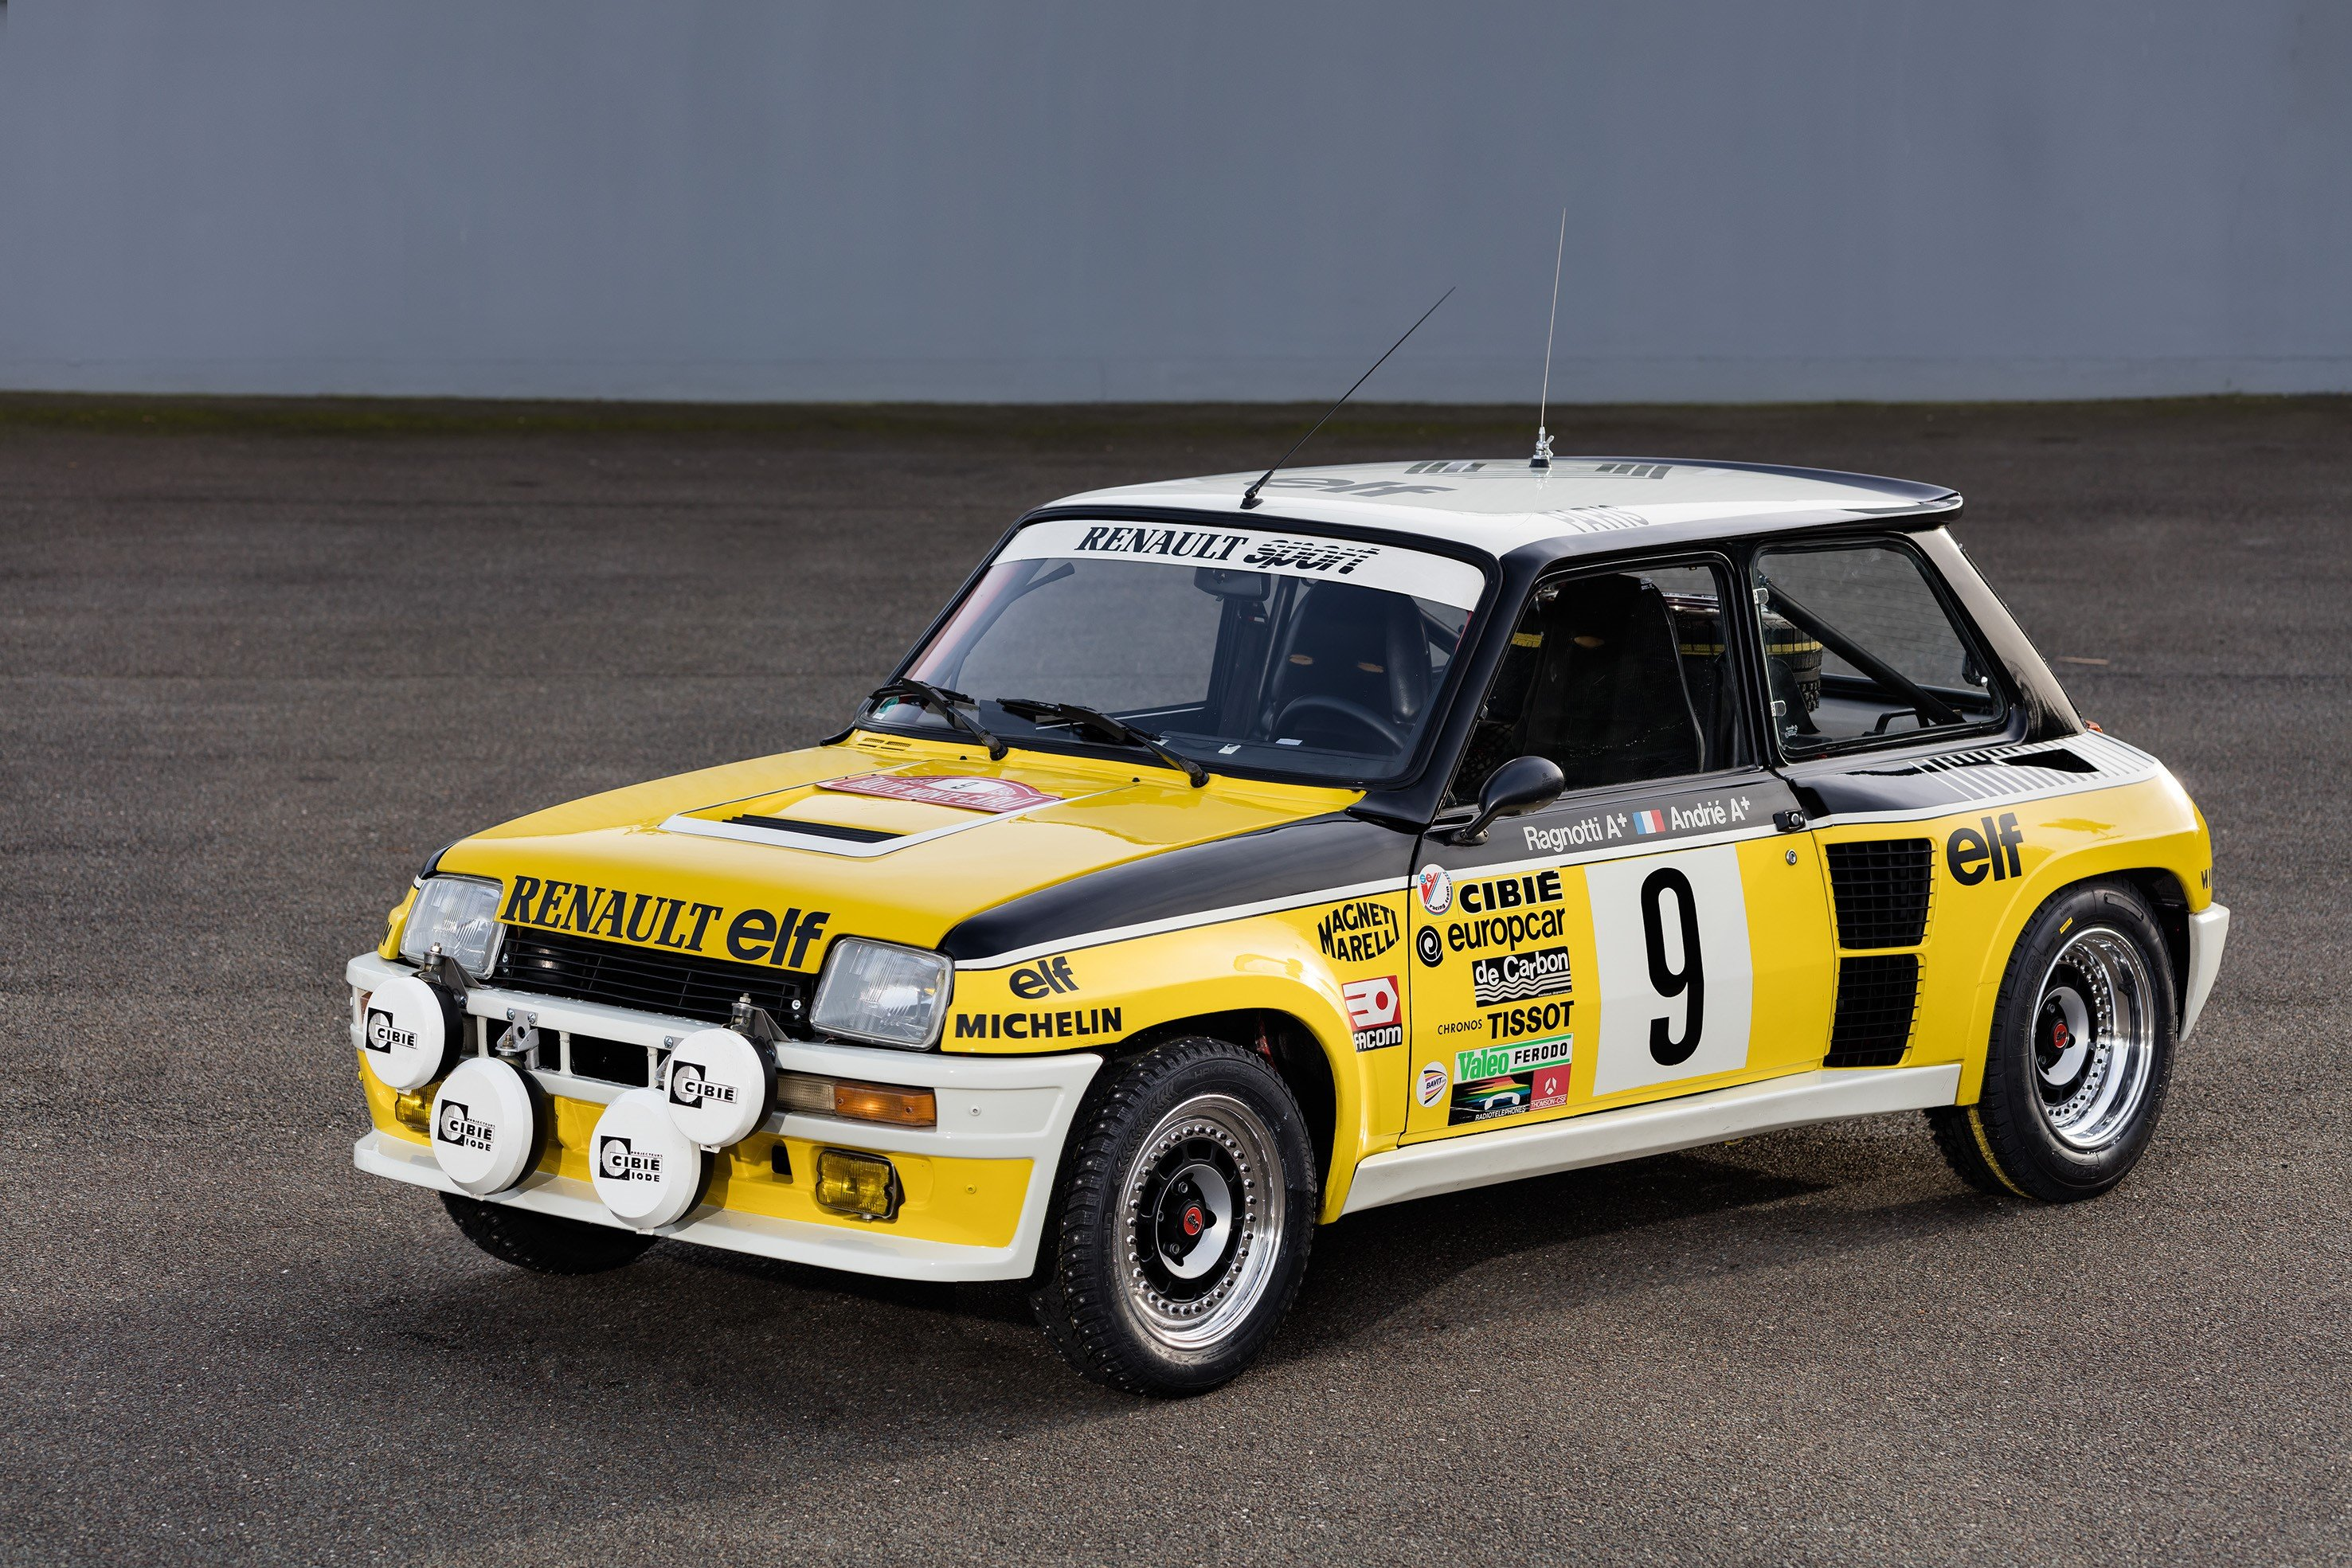 1980 82 renault r5 turbo group 4 wrc rally race racing wallpaper 2953x1969 881105 wallpaperup. Black Bedroom Furniture Sets. Home Design Ideas